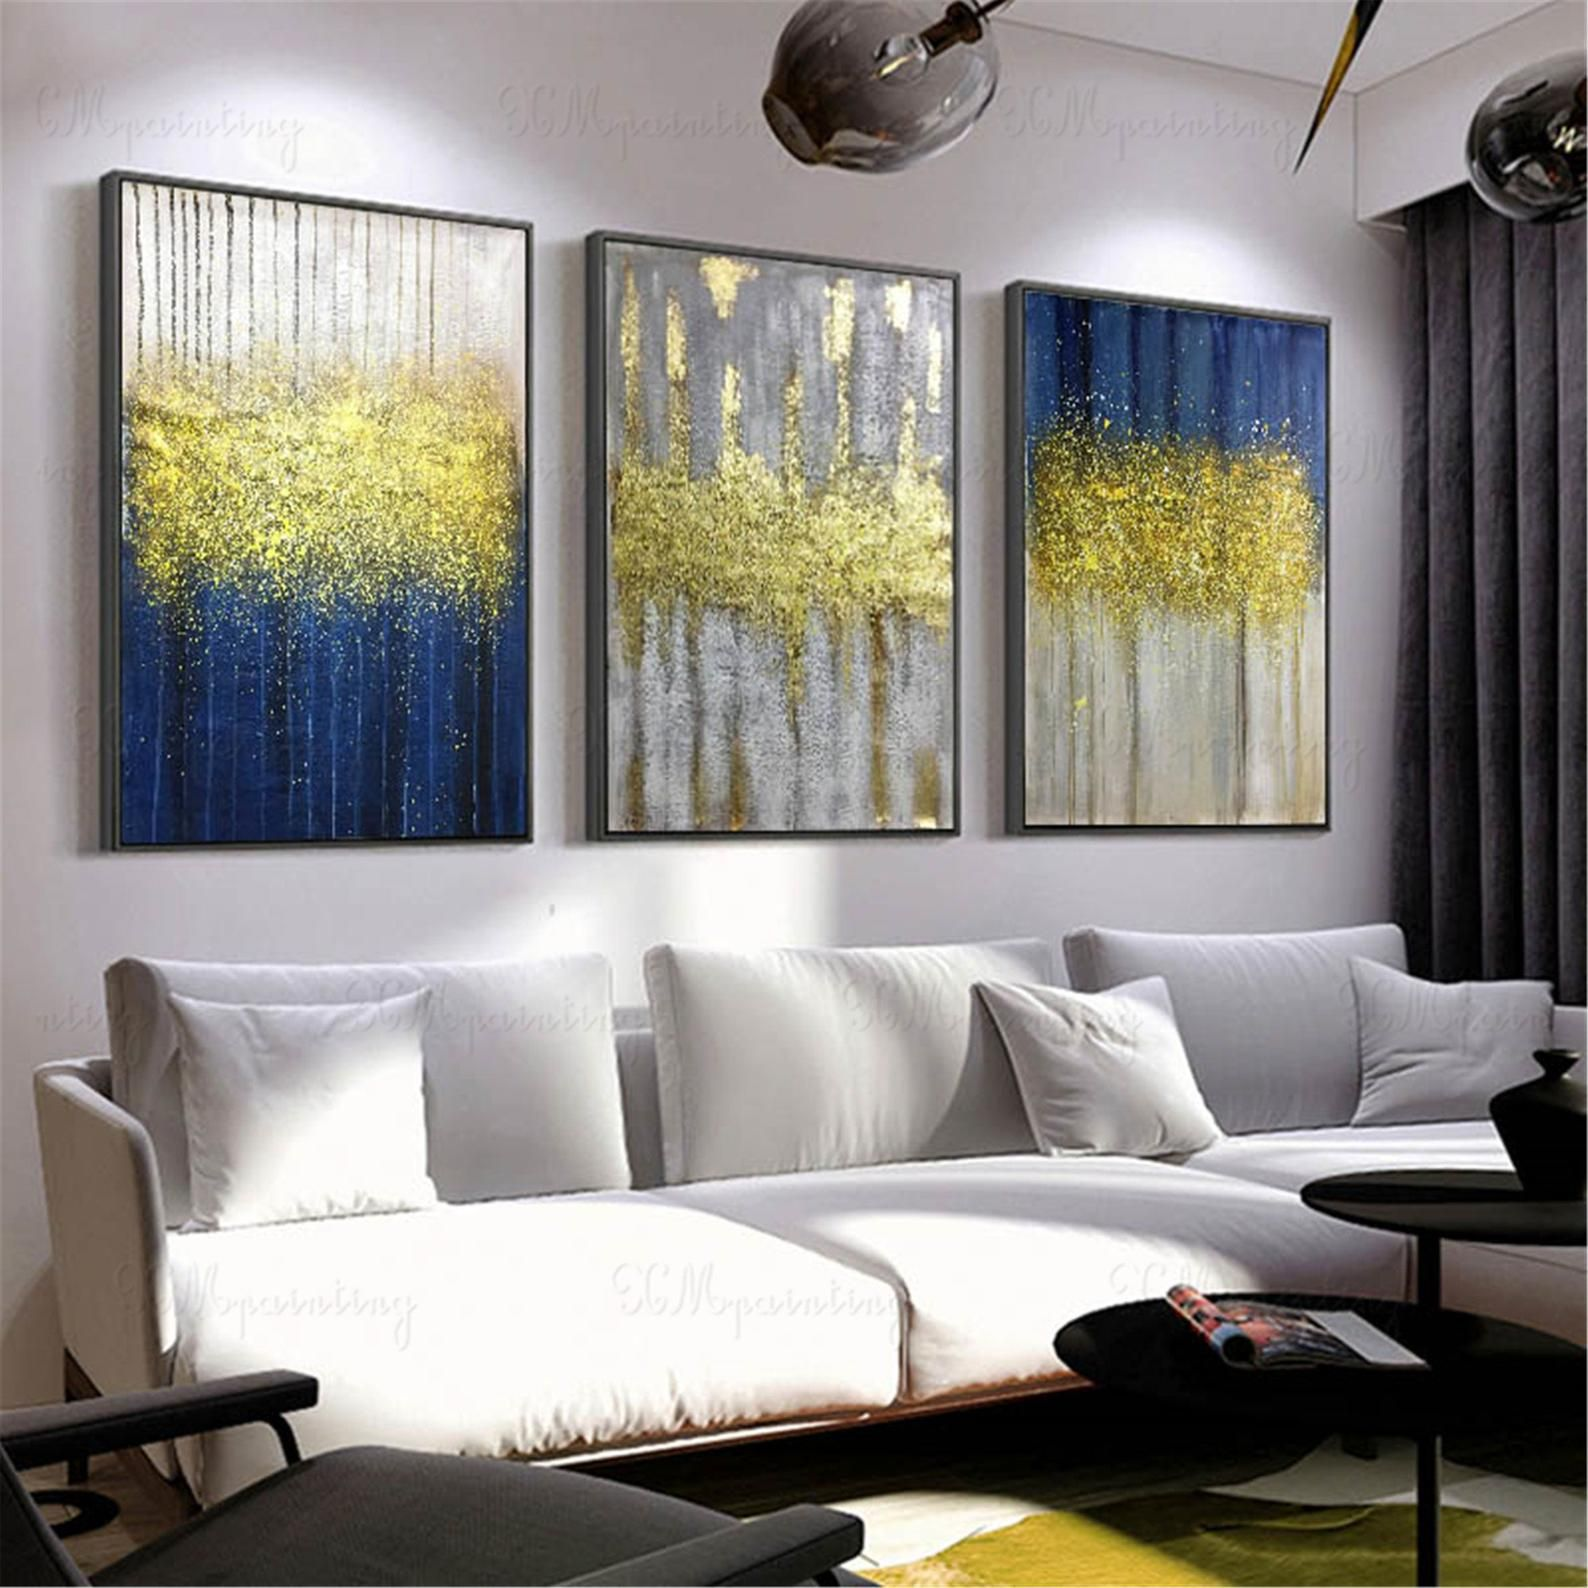 3 Pieces Gold Art Abstract Painting Canvas Wall Art Pictures Etsy In 2020 Living Room Canvas Canvas Art Wall Decor Abstract Art Painting